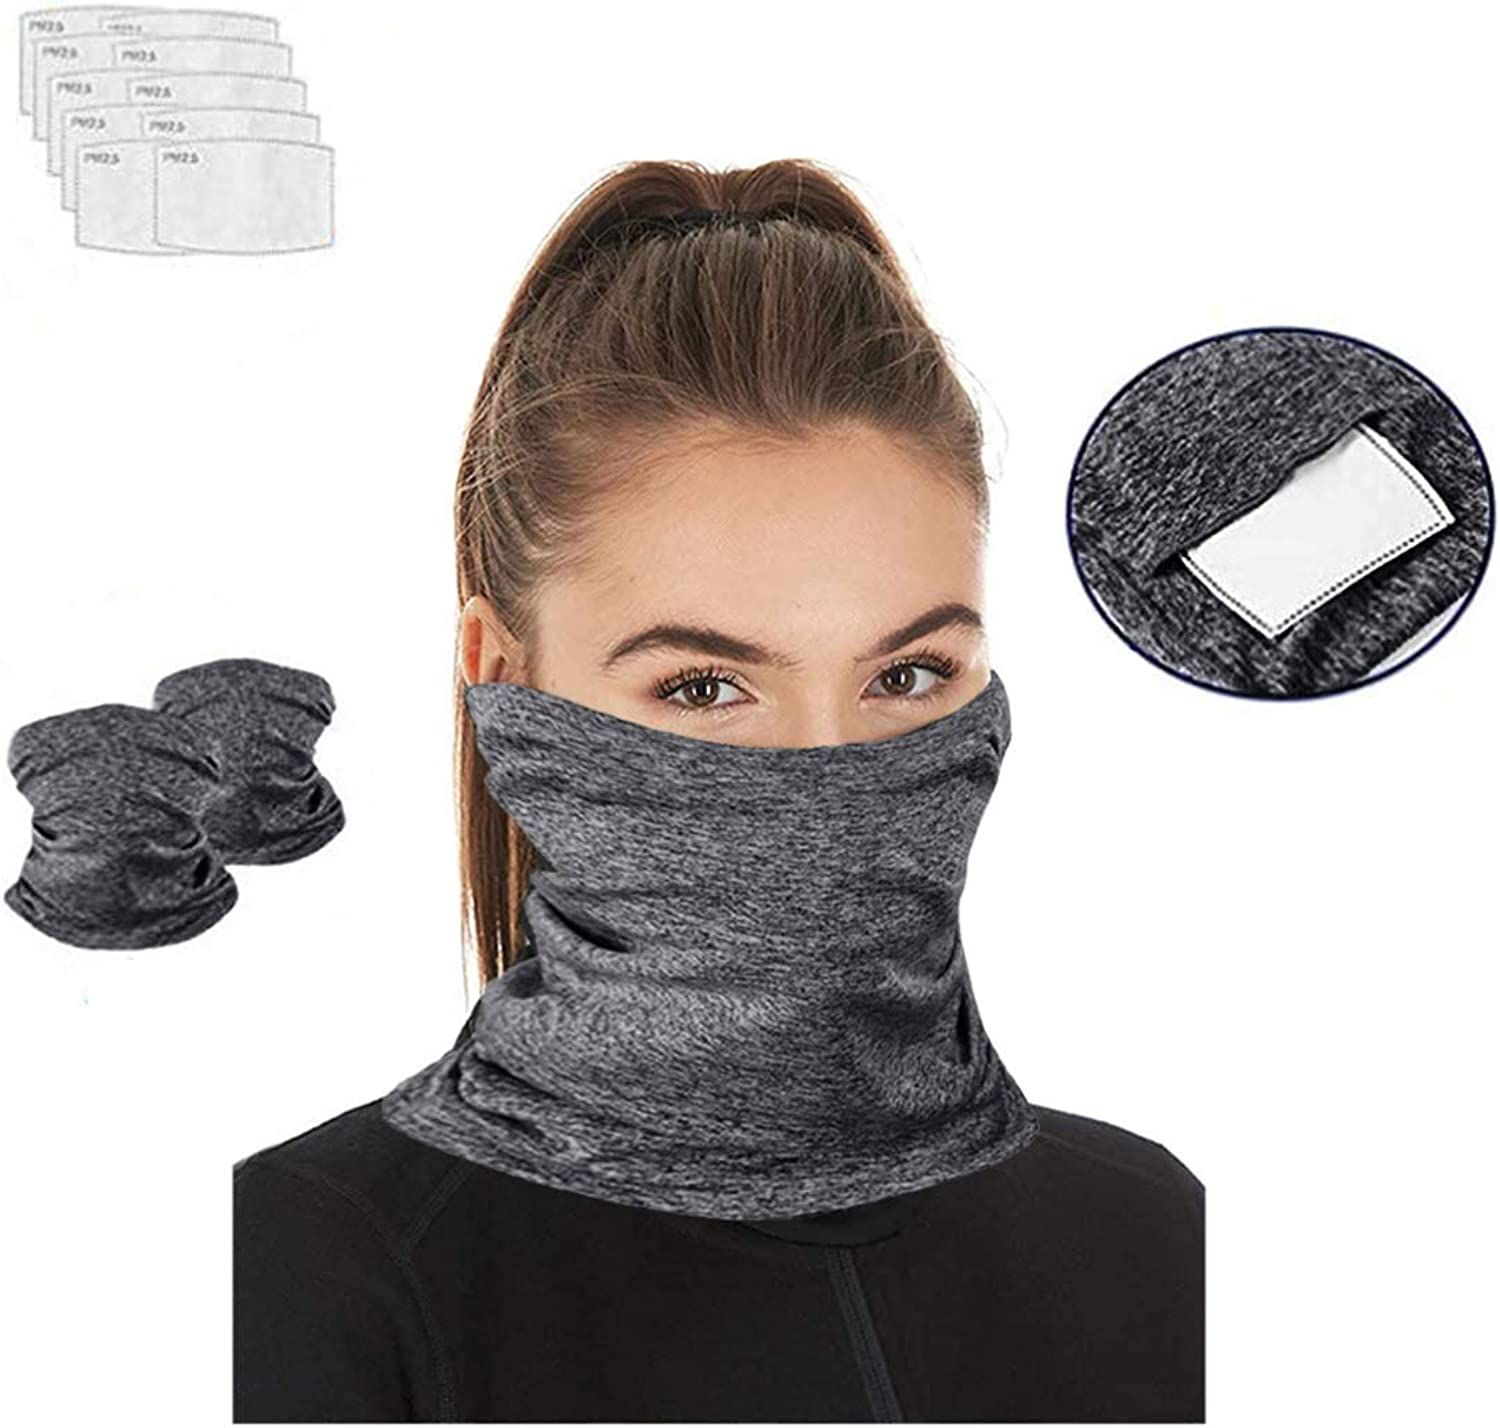 Zecilbo Seamless Bandana Face Scarf Neck Gaiter Multifunctional Half Face Magic Scarf with Carbon Filters/Outdoor Sports 2PCS